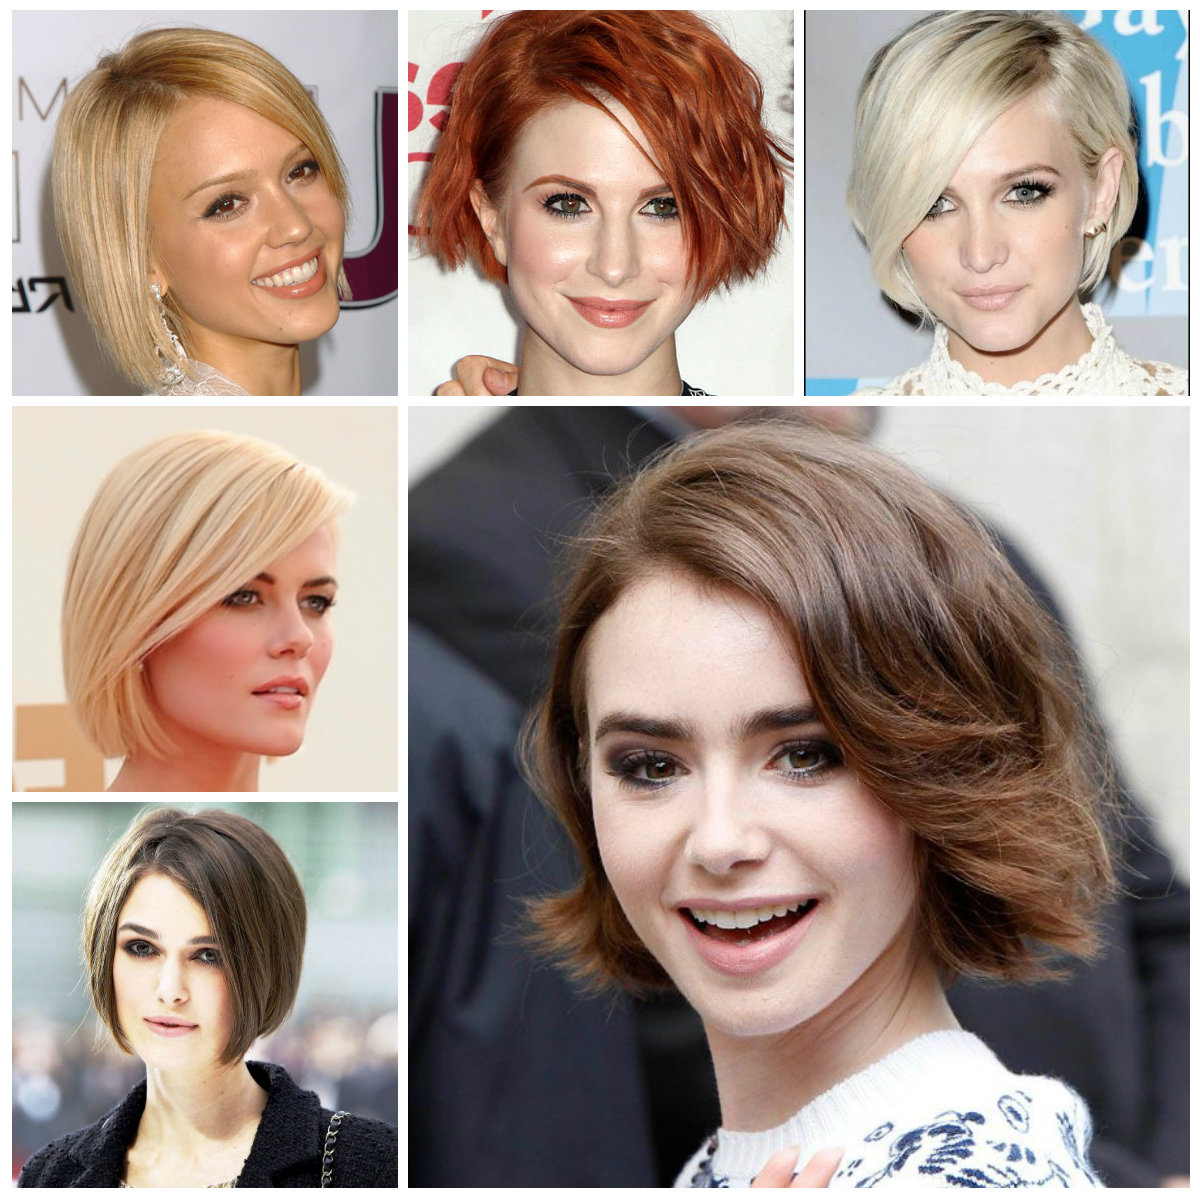 Short Bob Hairstyles From Celebrities | Hairstyles For Women 2019 Intended For Short Straight Bob Hairstyles (View 18 of 20)